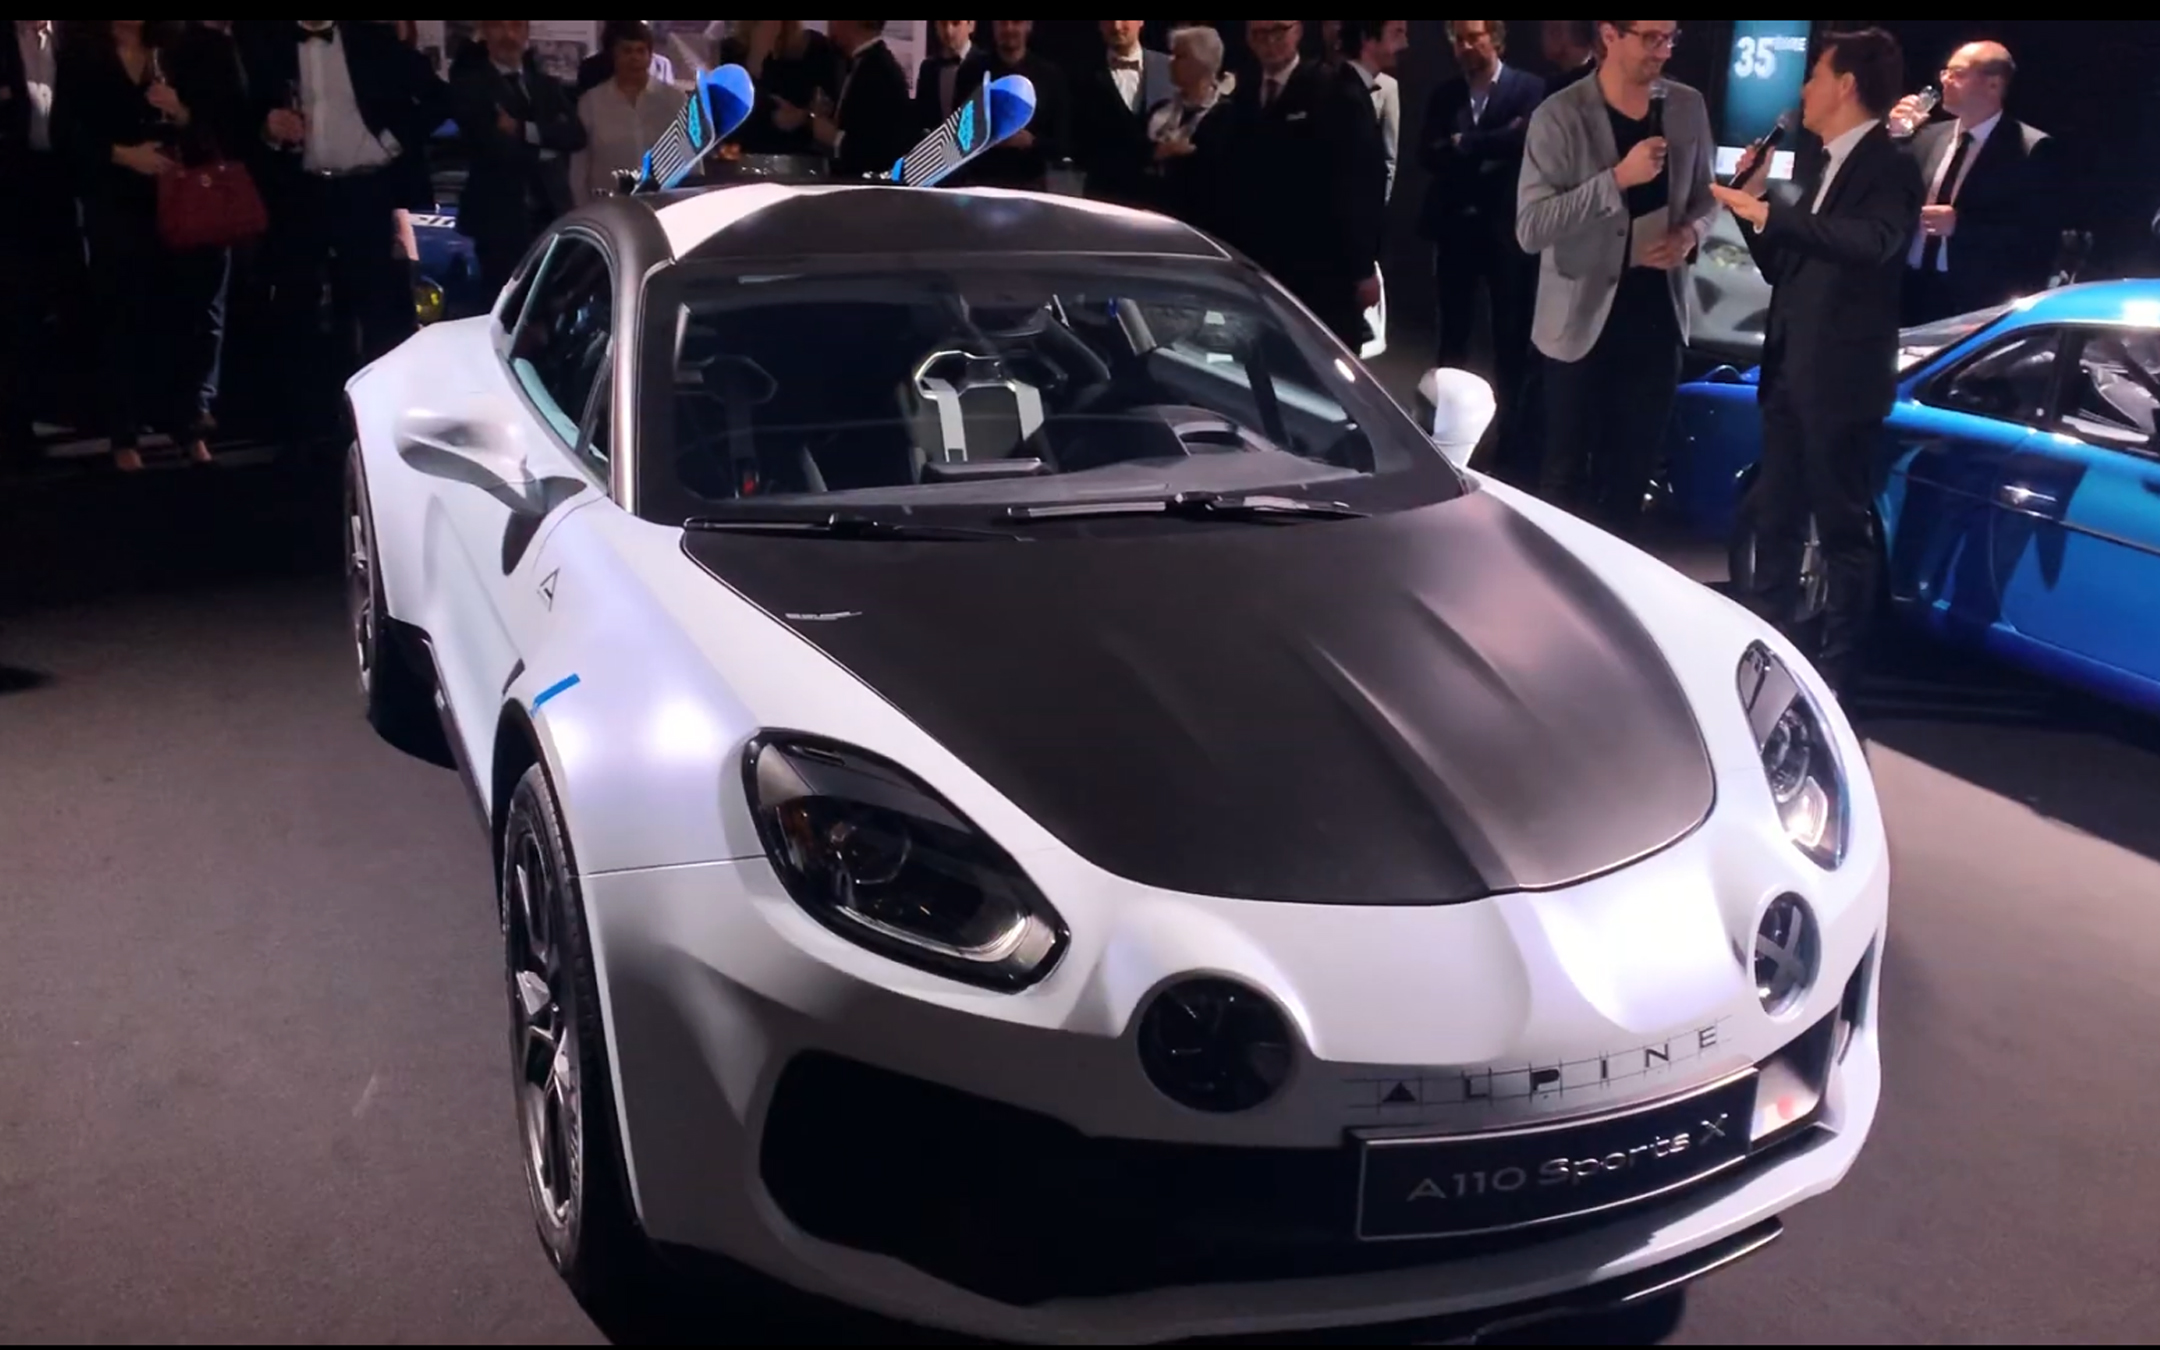 Alpine A110 Sports X - 2020 - front / avant - preview - showcar - photo screen video - FAI2020